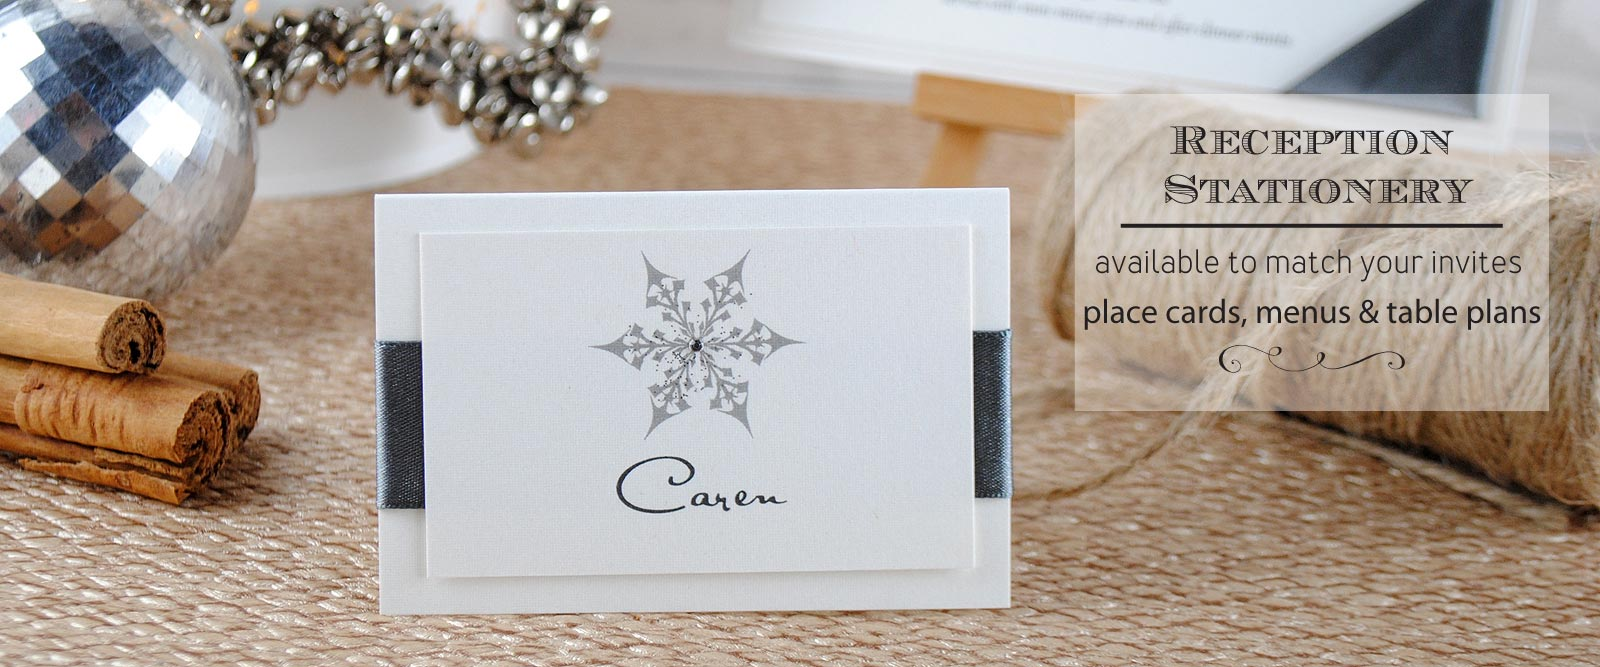 Beautiful Handmade Wedding Place Cards Wedding Invitation Boutique ...